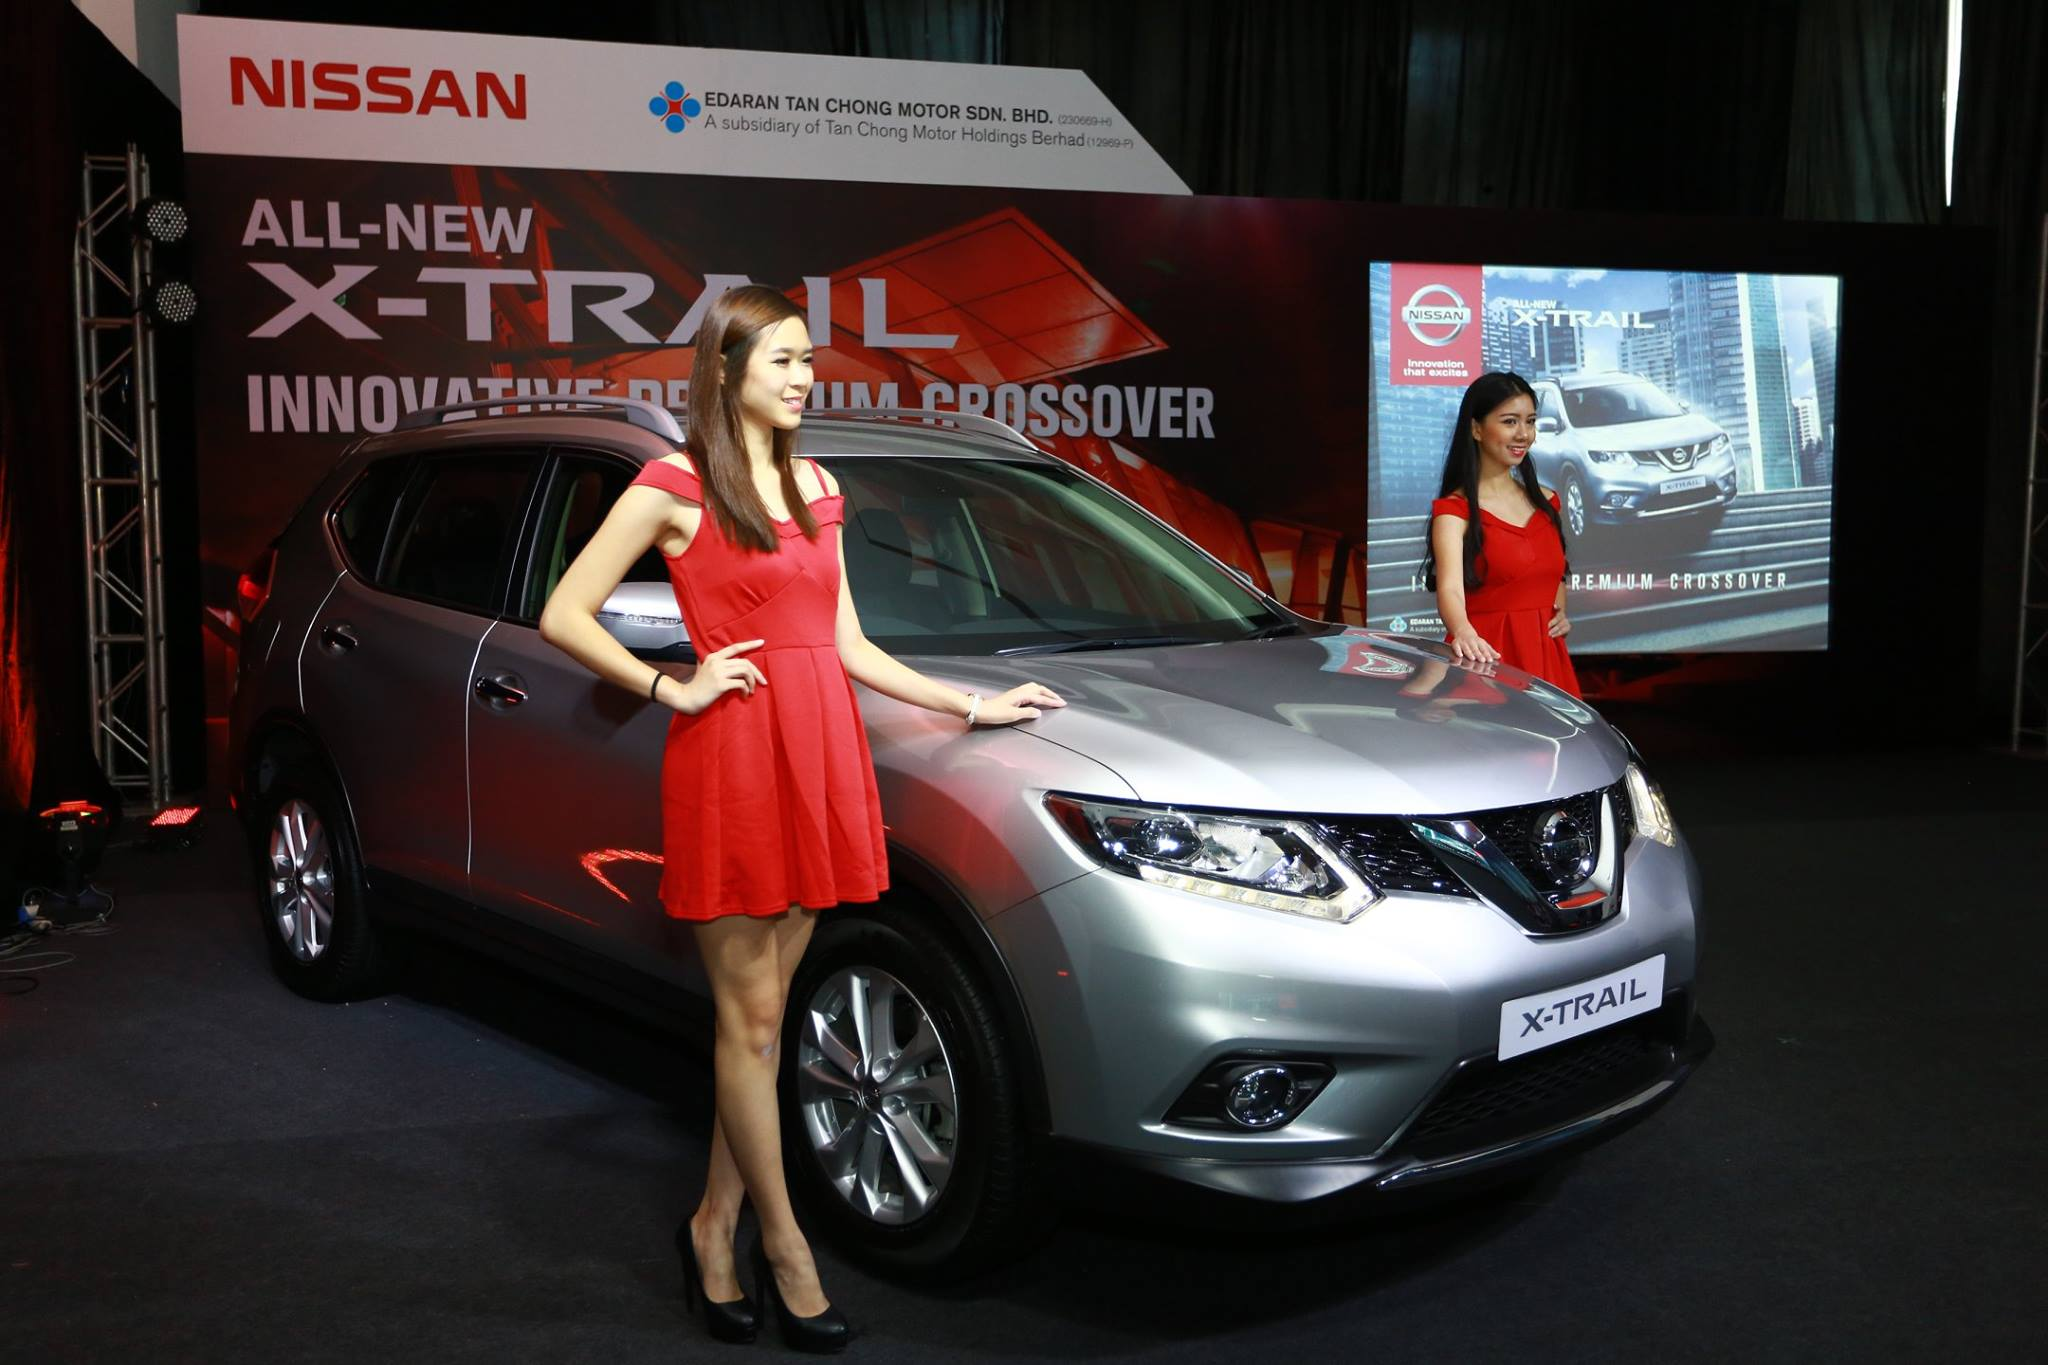 new car release in malaysia 2014Nissan XTrail 3rd Generation Launched in Malaysia  timchewnet